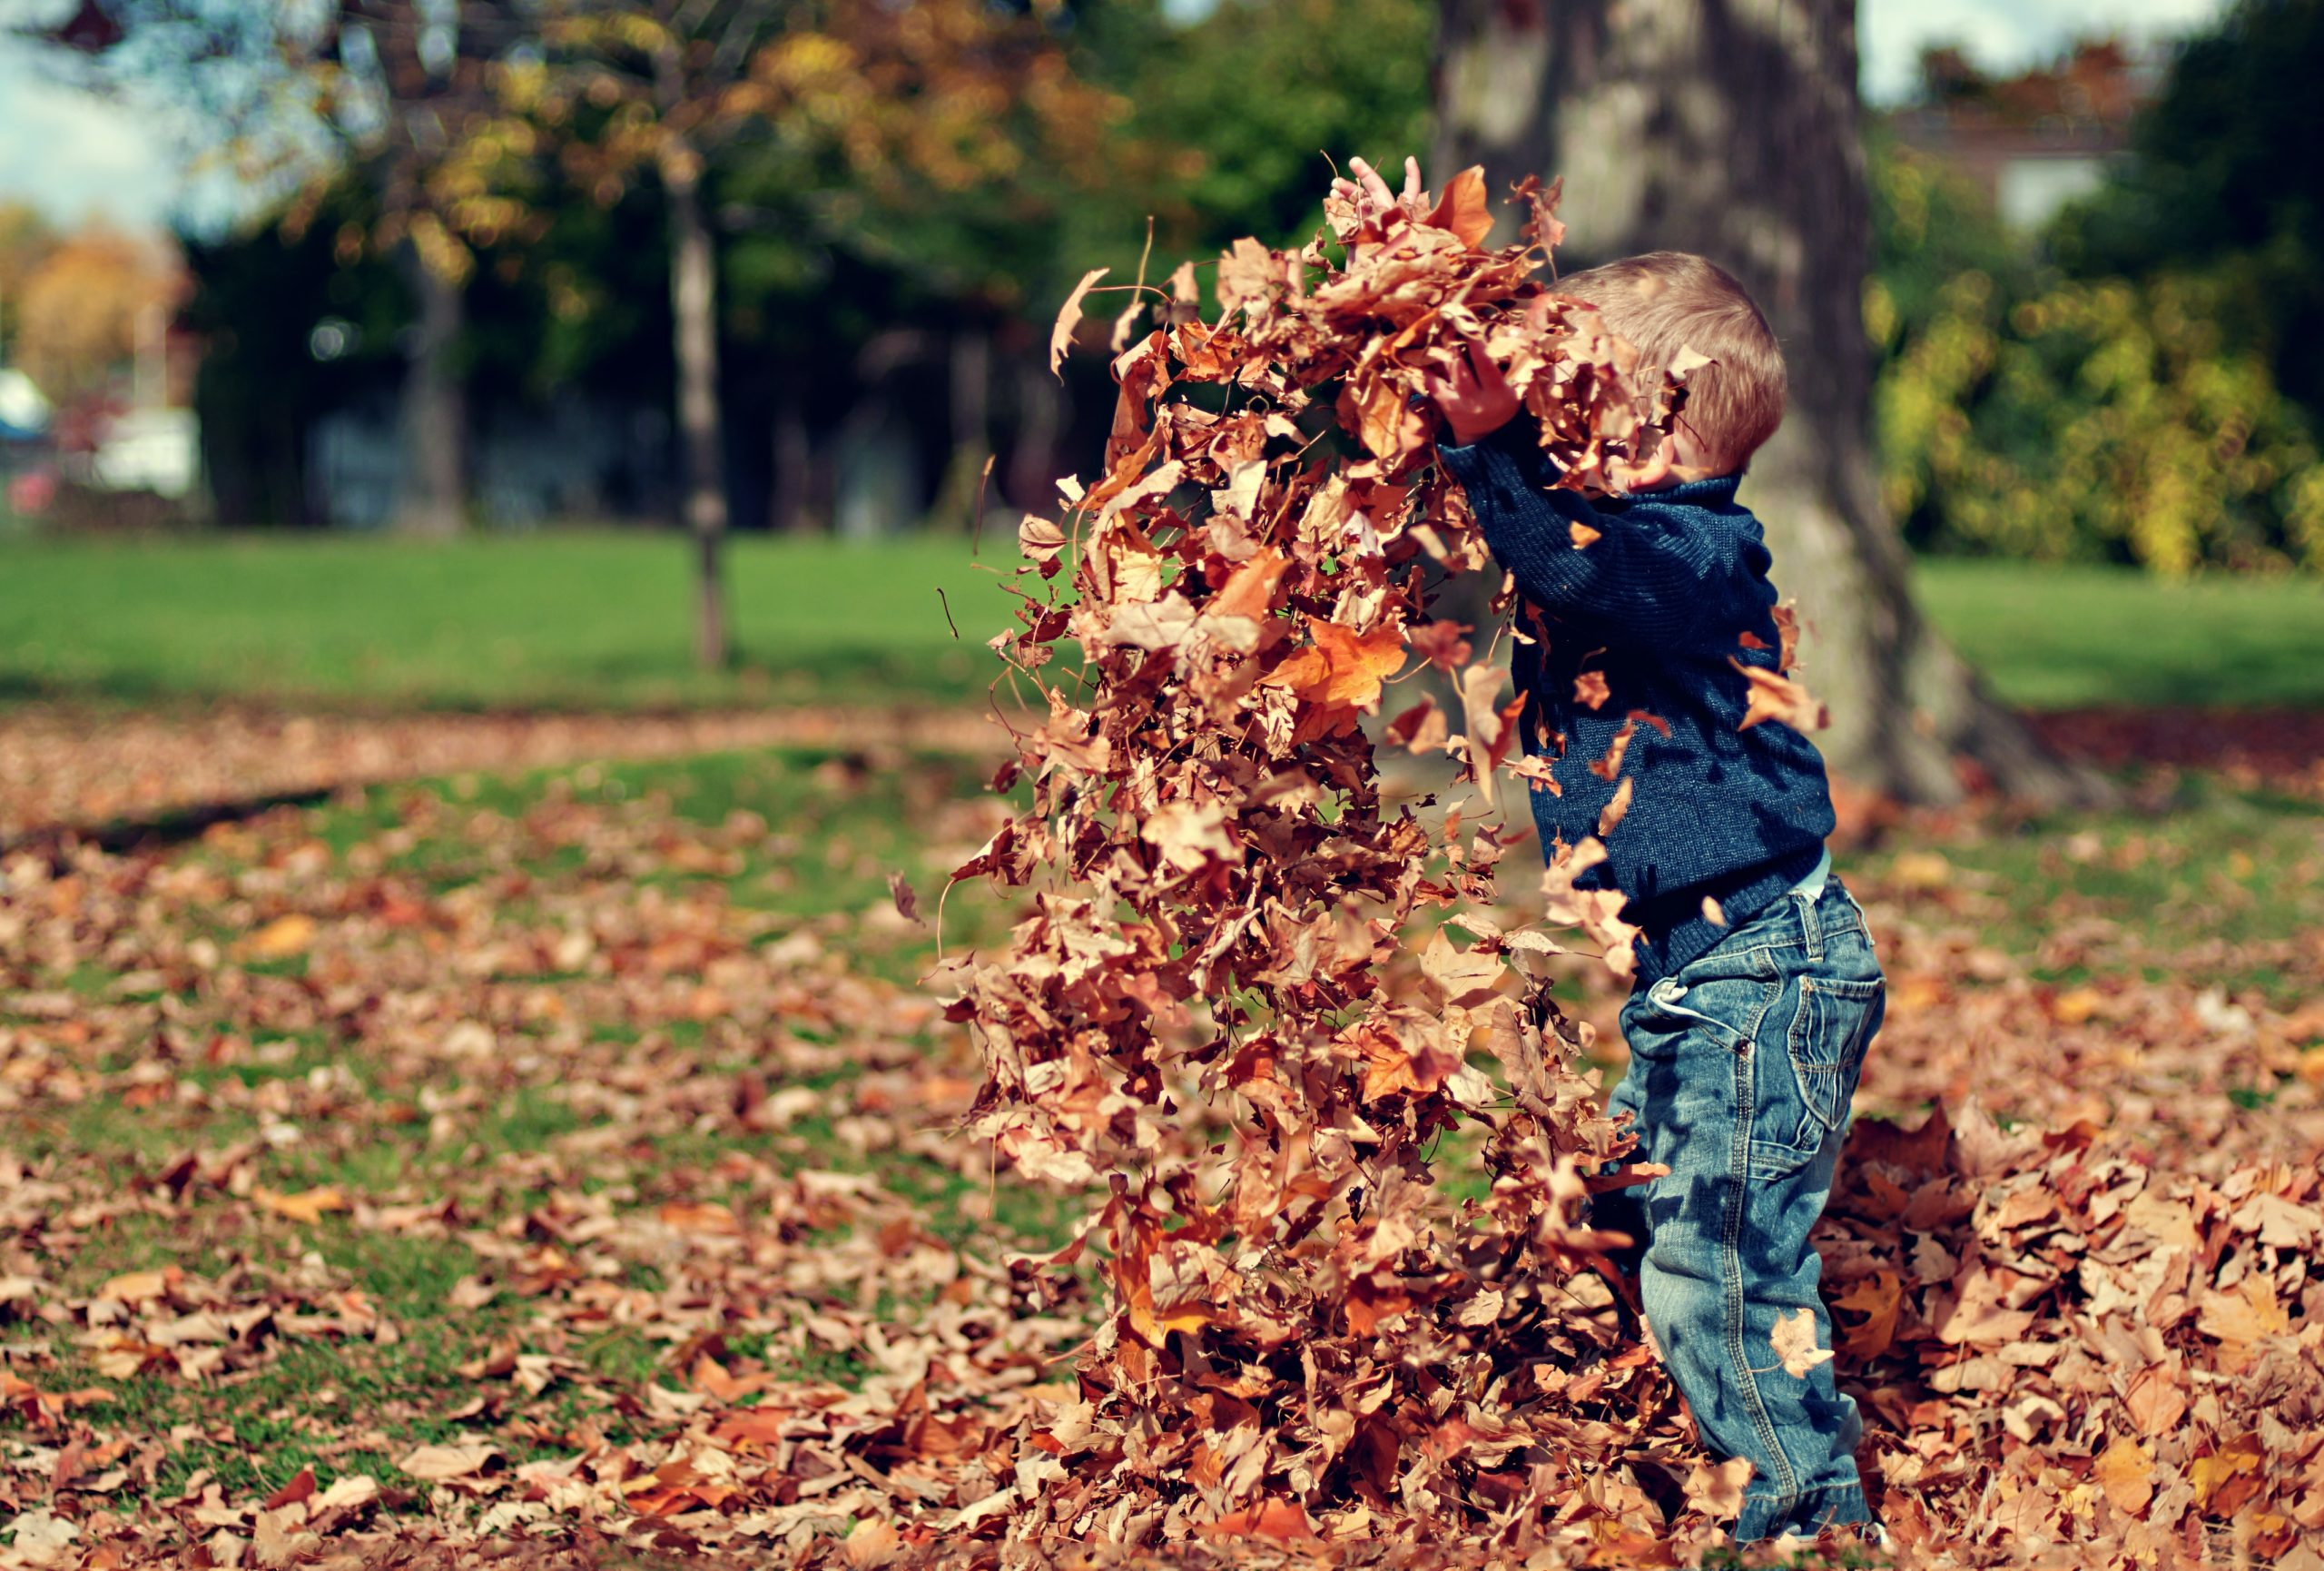 boy-playing-with-fall-leaves-outdoors-36965